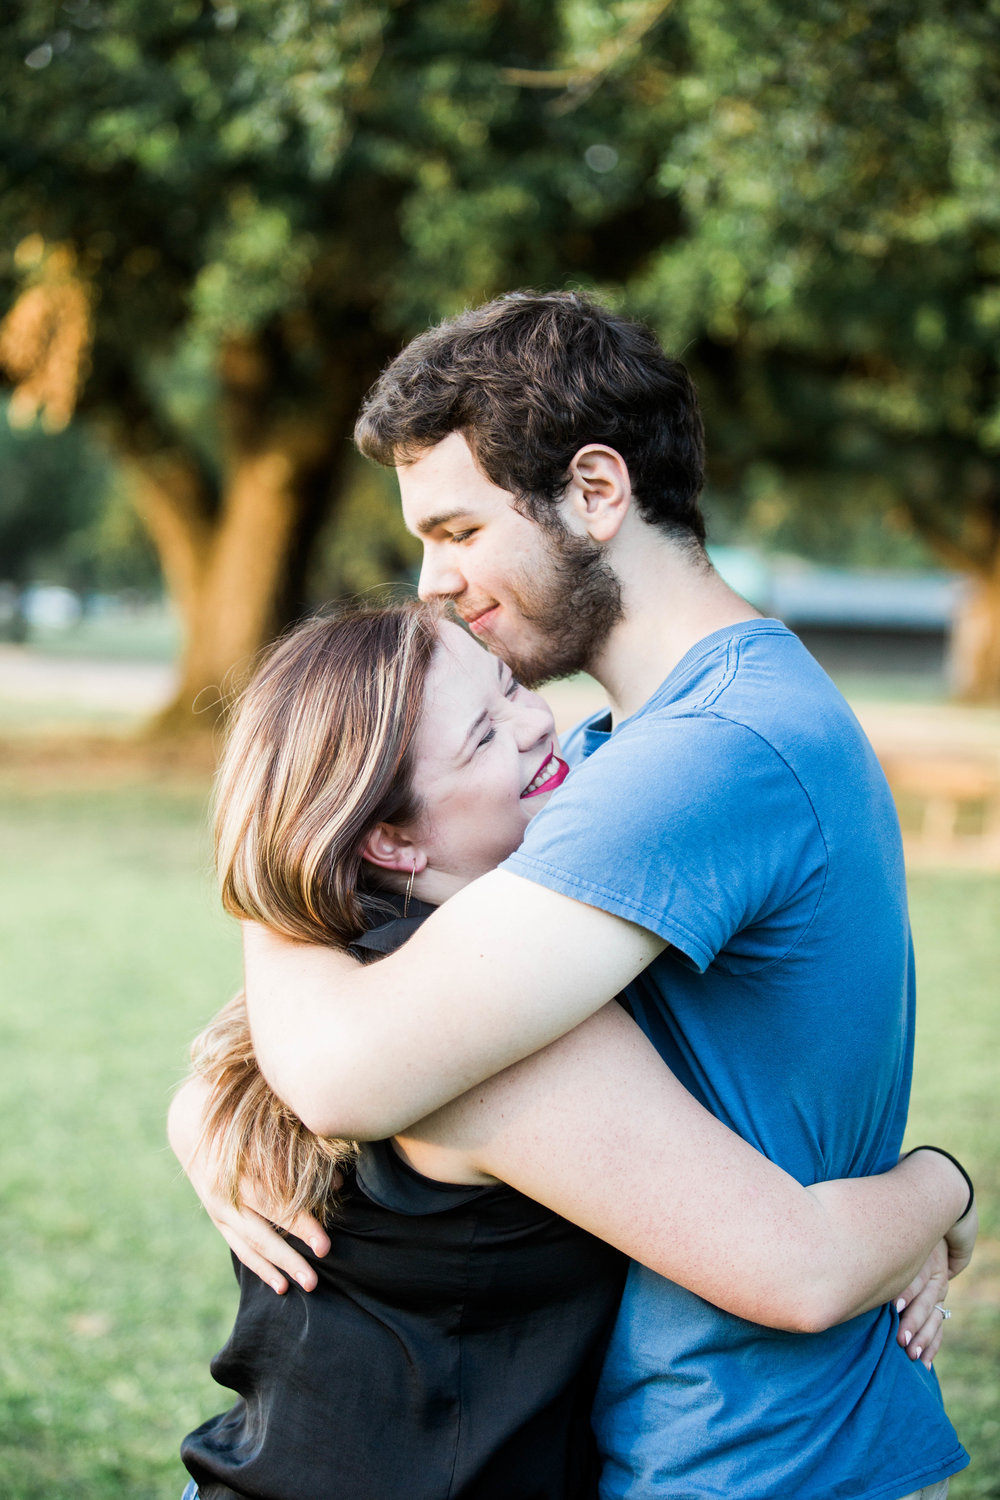 MGP-Ashlyn&Chris-Proposal-23.jpg